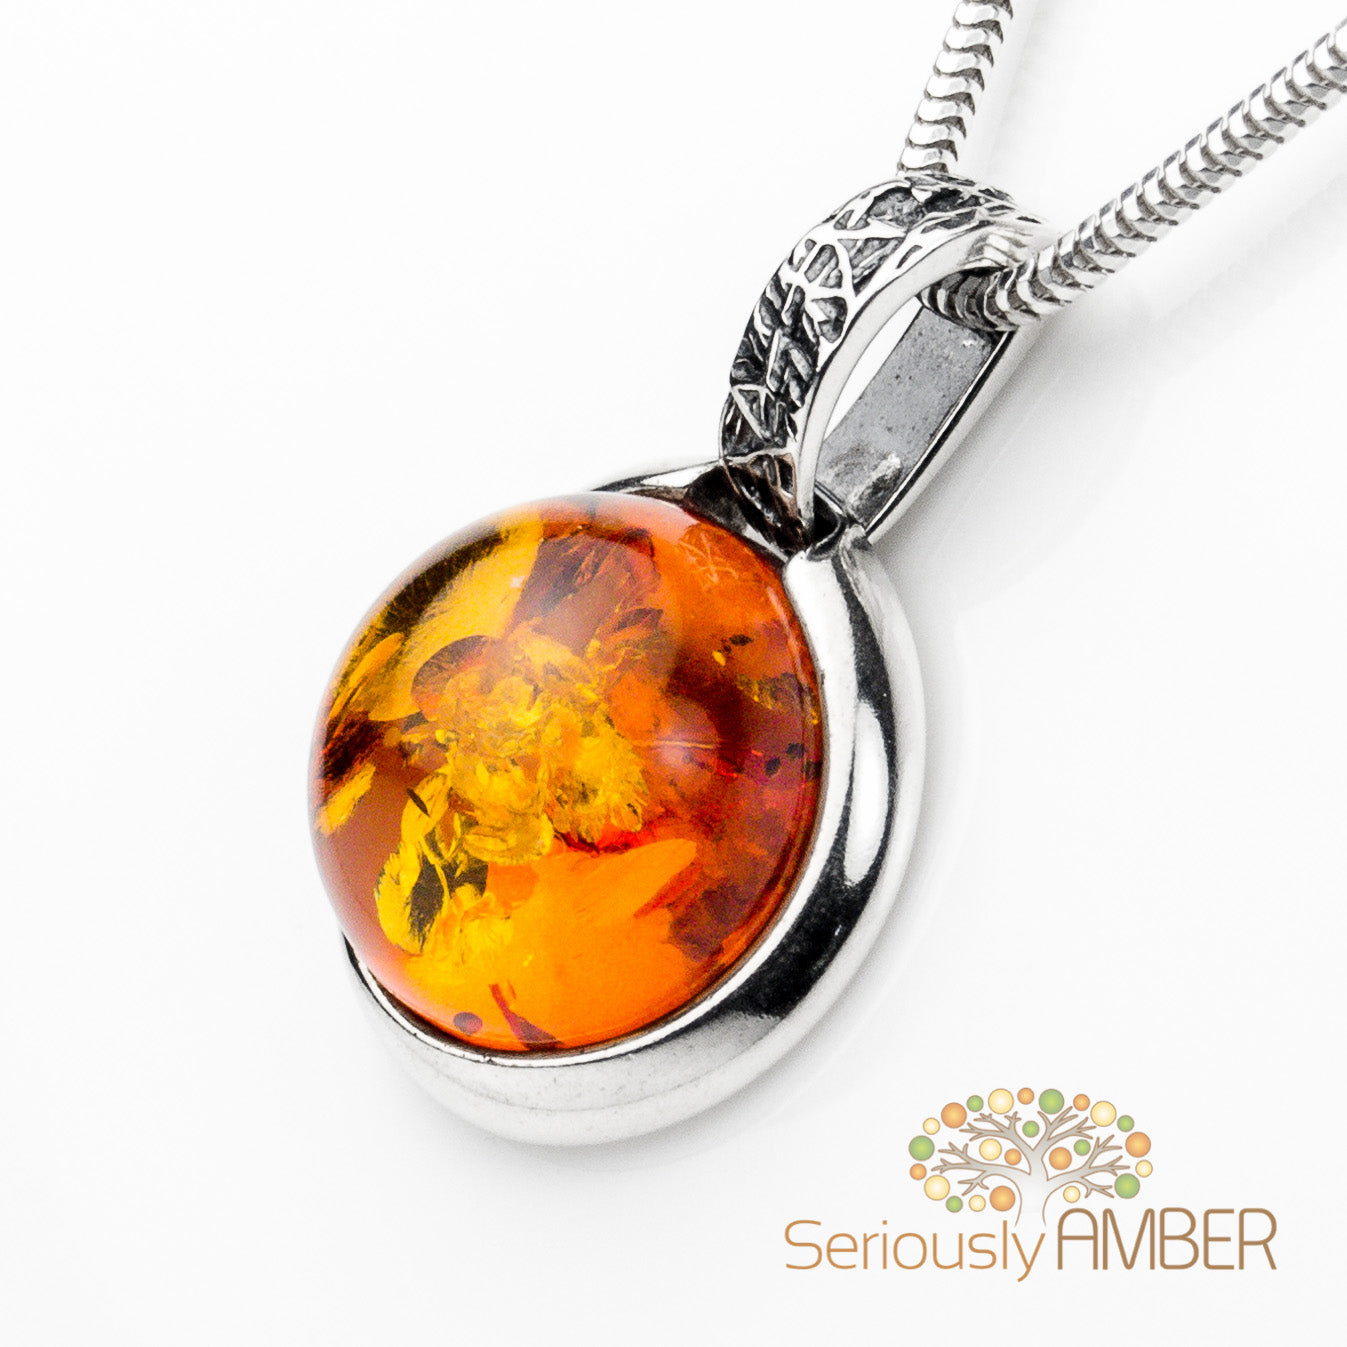 BALTIC AMBER AND STERLING SILVER 925 DESIGNER COGNAC PENDANT JEWELLERY JEWELRY NO CHAIN